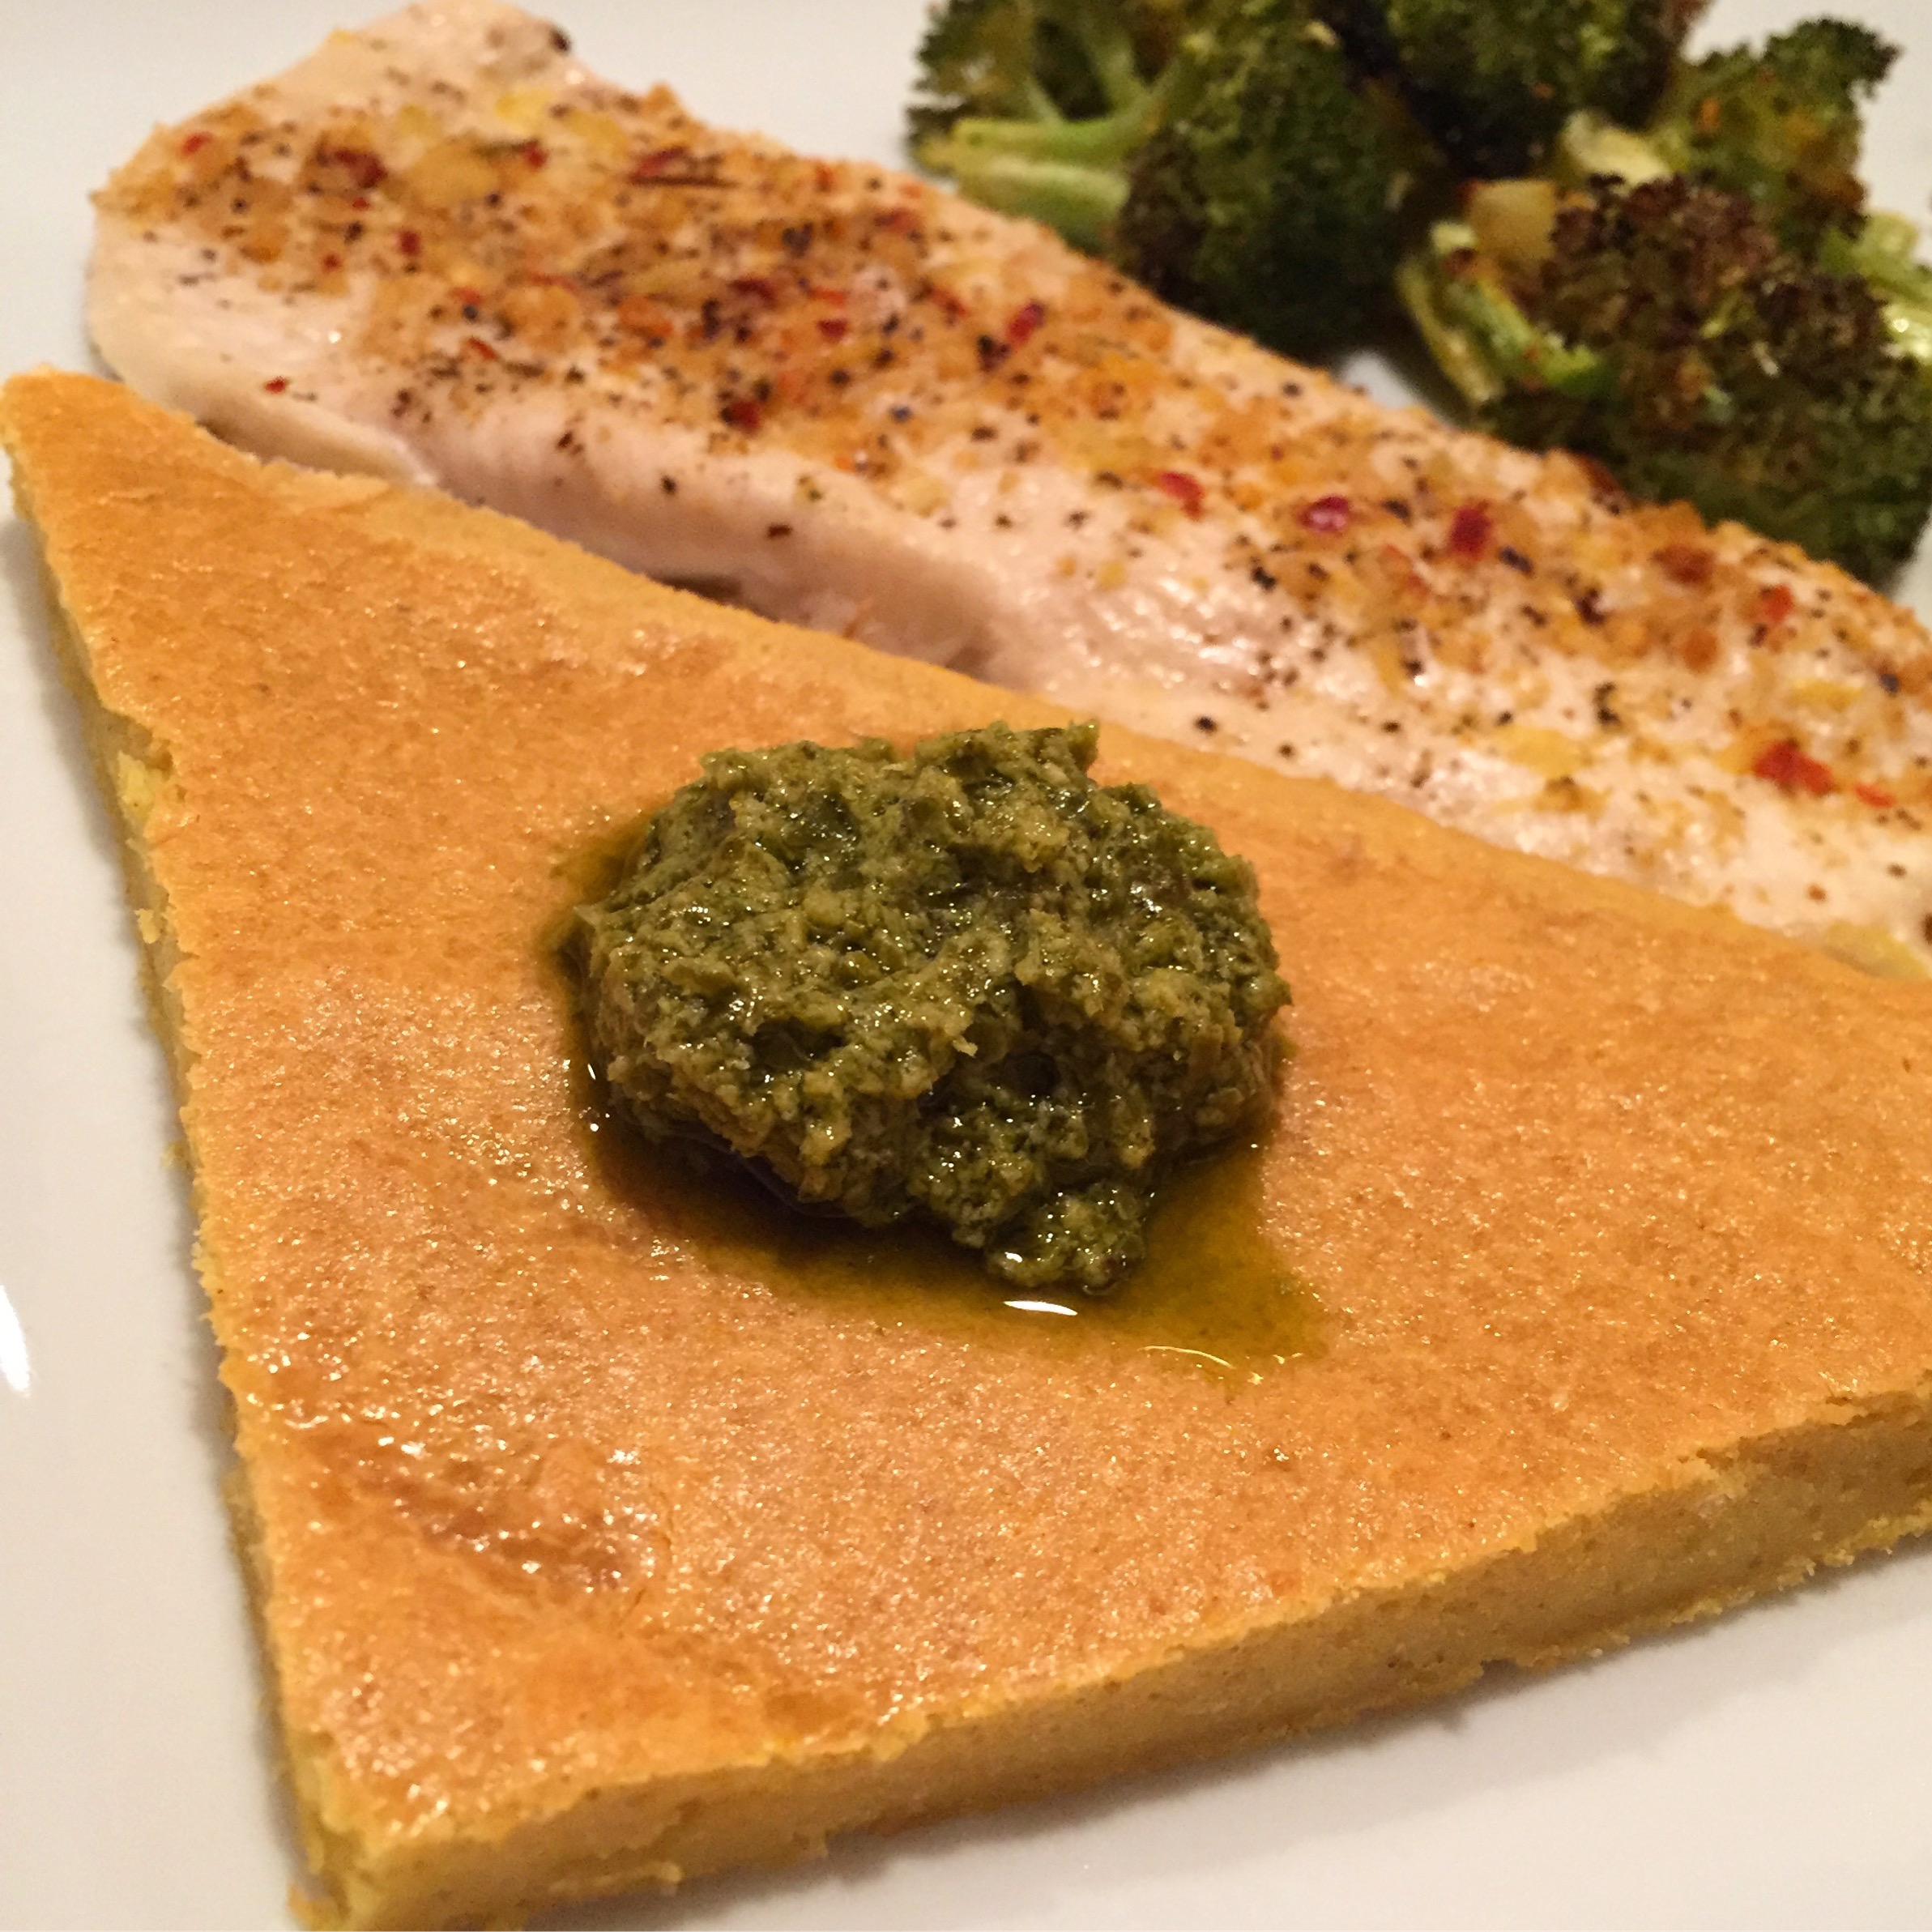 Dinner: Lentil Flatbread + Spiced lemon Chicken + Lemon Roasted Broccoli + hummus (which is hiding) to dip the chicken in.